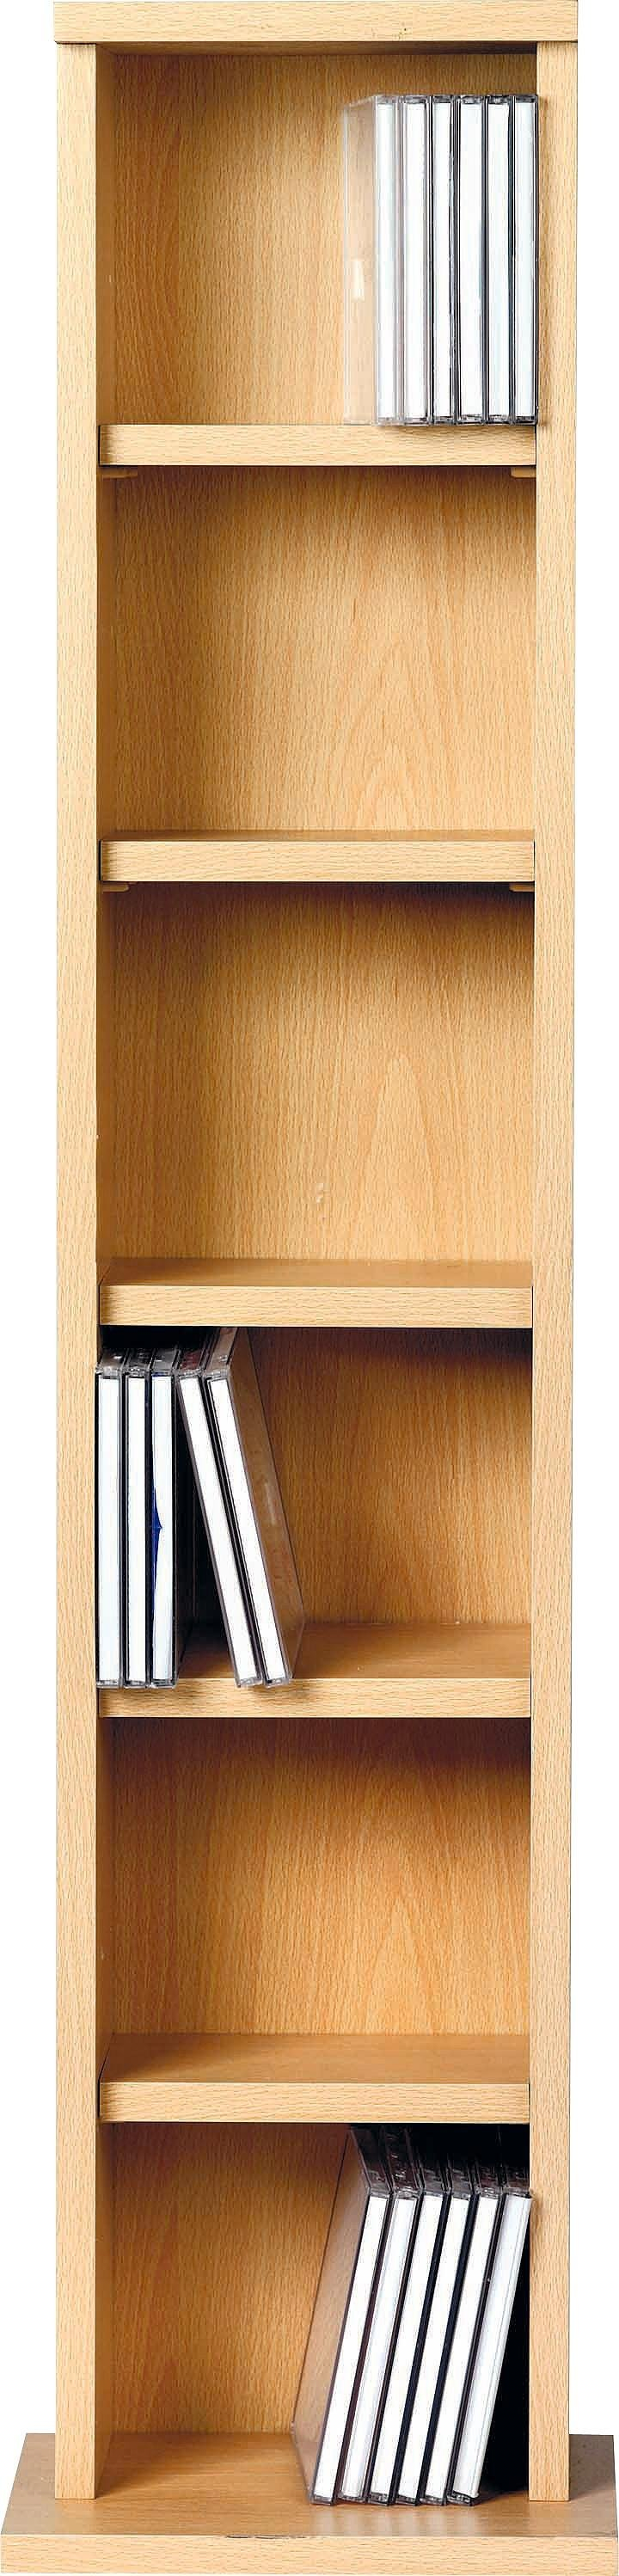 Argos Home CD And DVD Media Storage Tower   Beech Effect